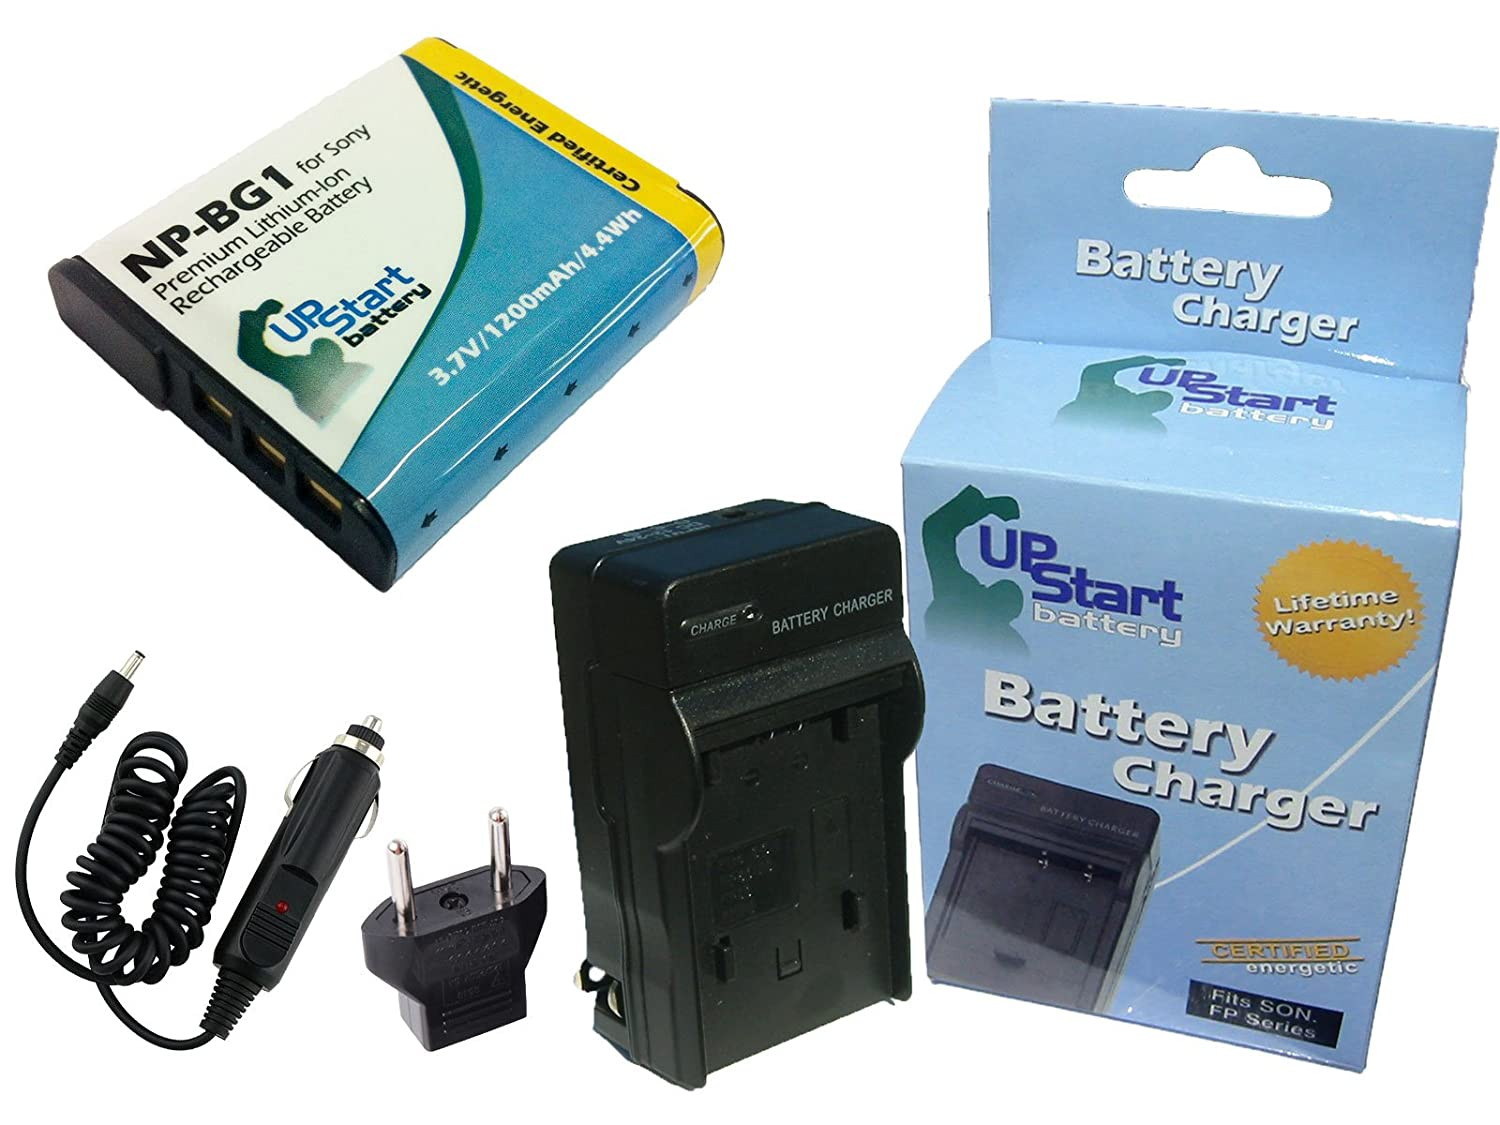 Sony Cyber-shot DSC-W70 Battery and Charger with Car Plug and EU Adapter - Replacement for Sony NP-BG1 Digital Camera Batteries and Chargers (1200mAh, 3.7V, Lithium-Ion) Upstart Battery NP-BG1-KIT-CAR-EU-DL85